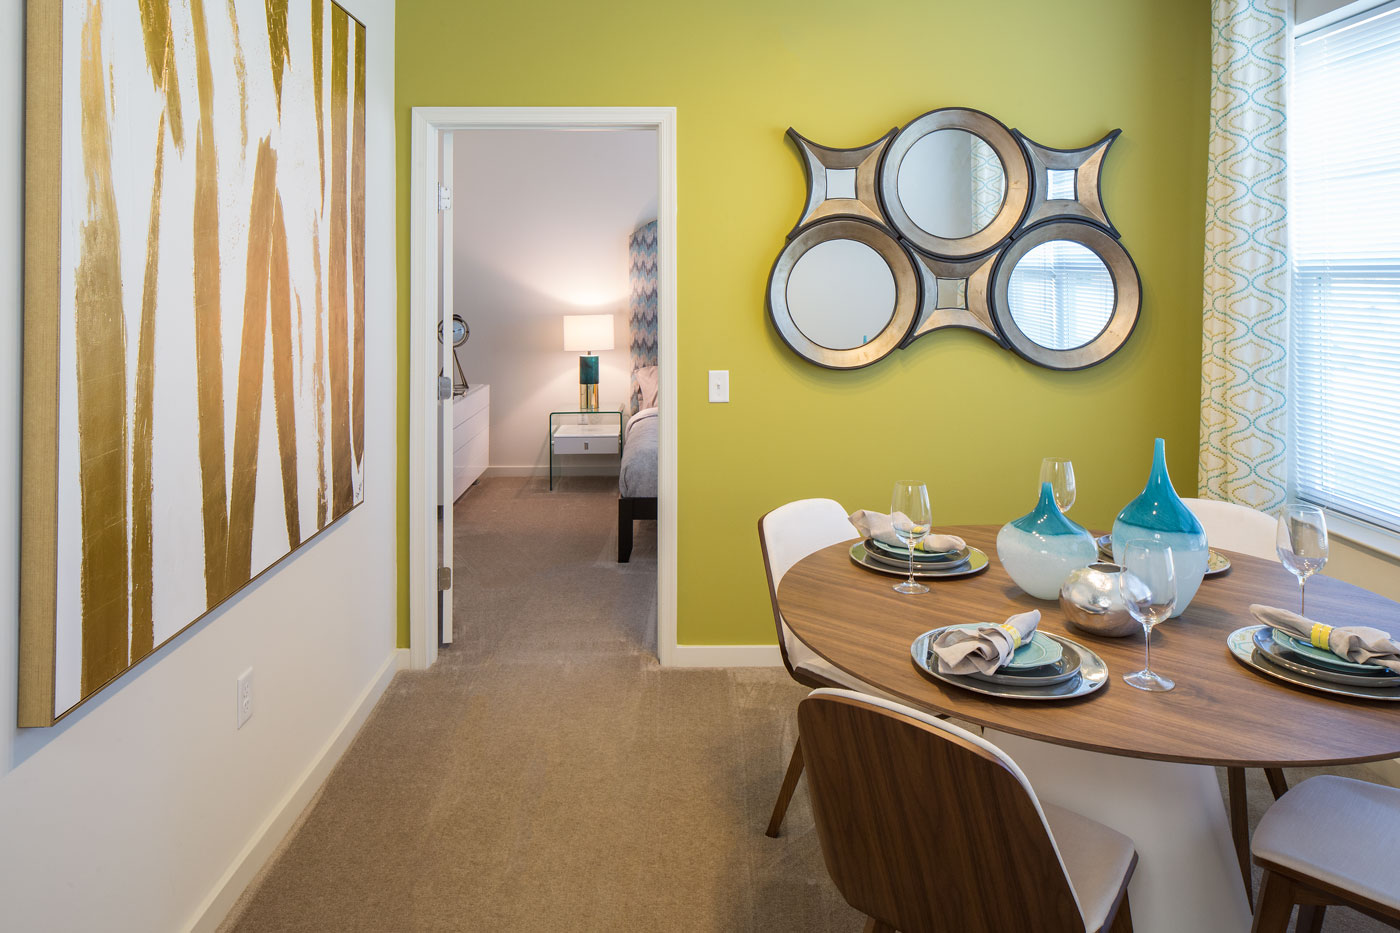 dining area with tables, chairs, modern artwork, windows and a view of the bedroom - christiana mall apartments